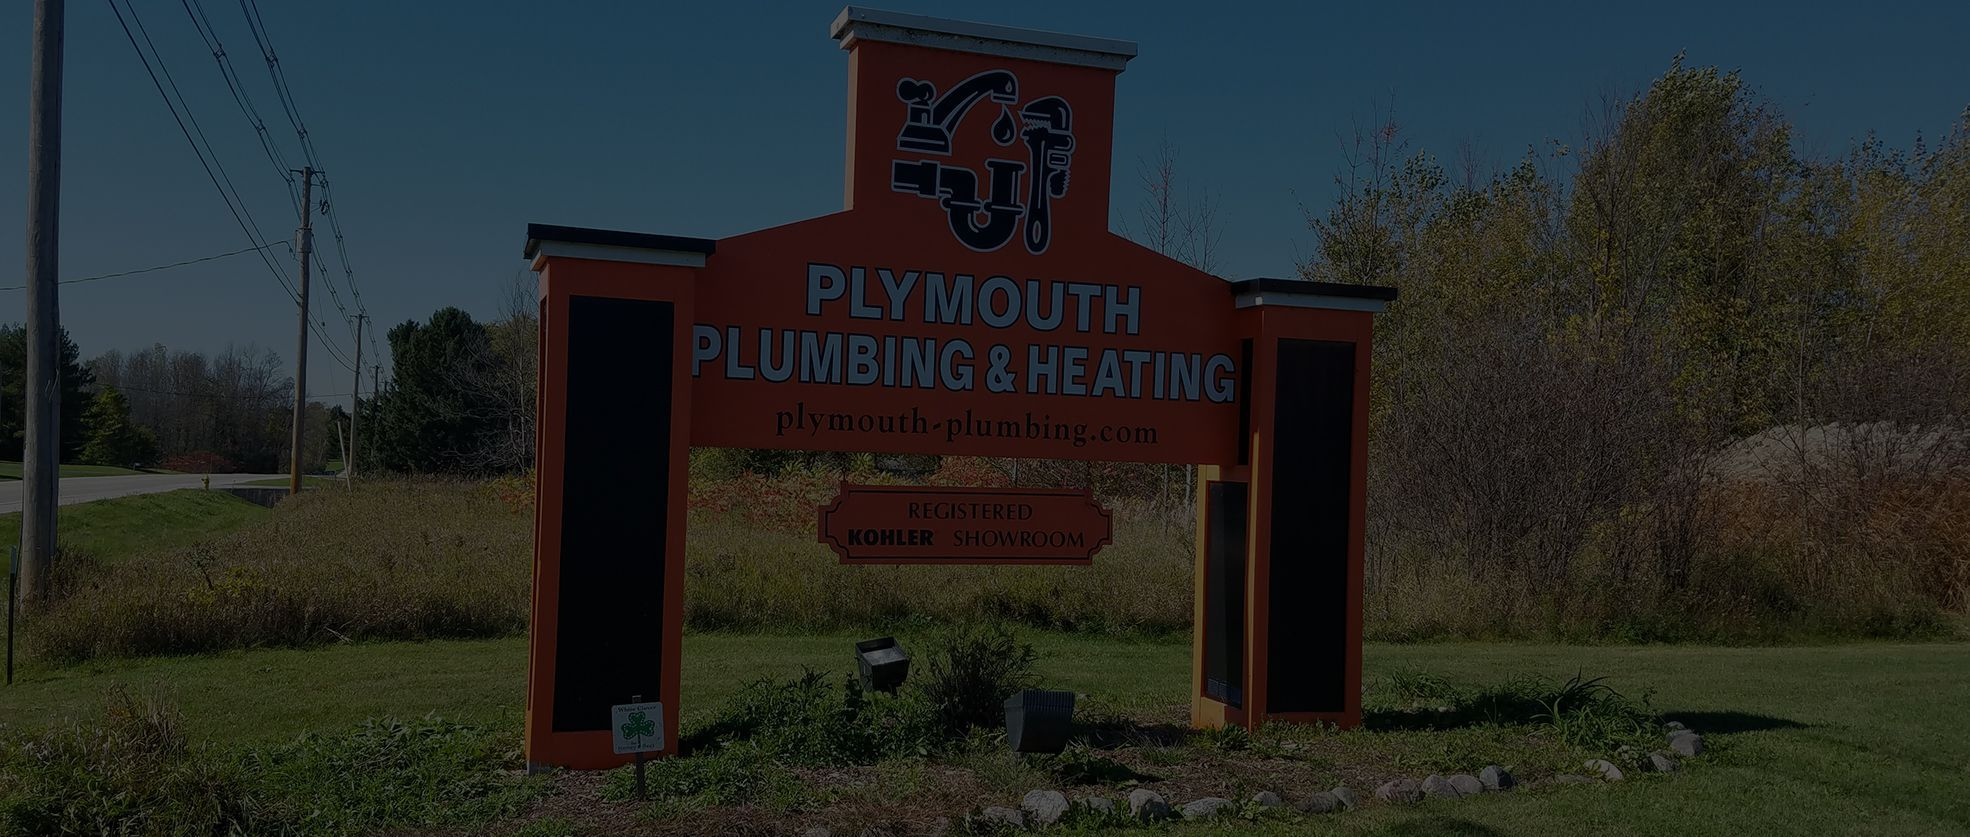 plymouthplumbers